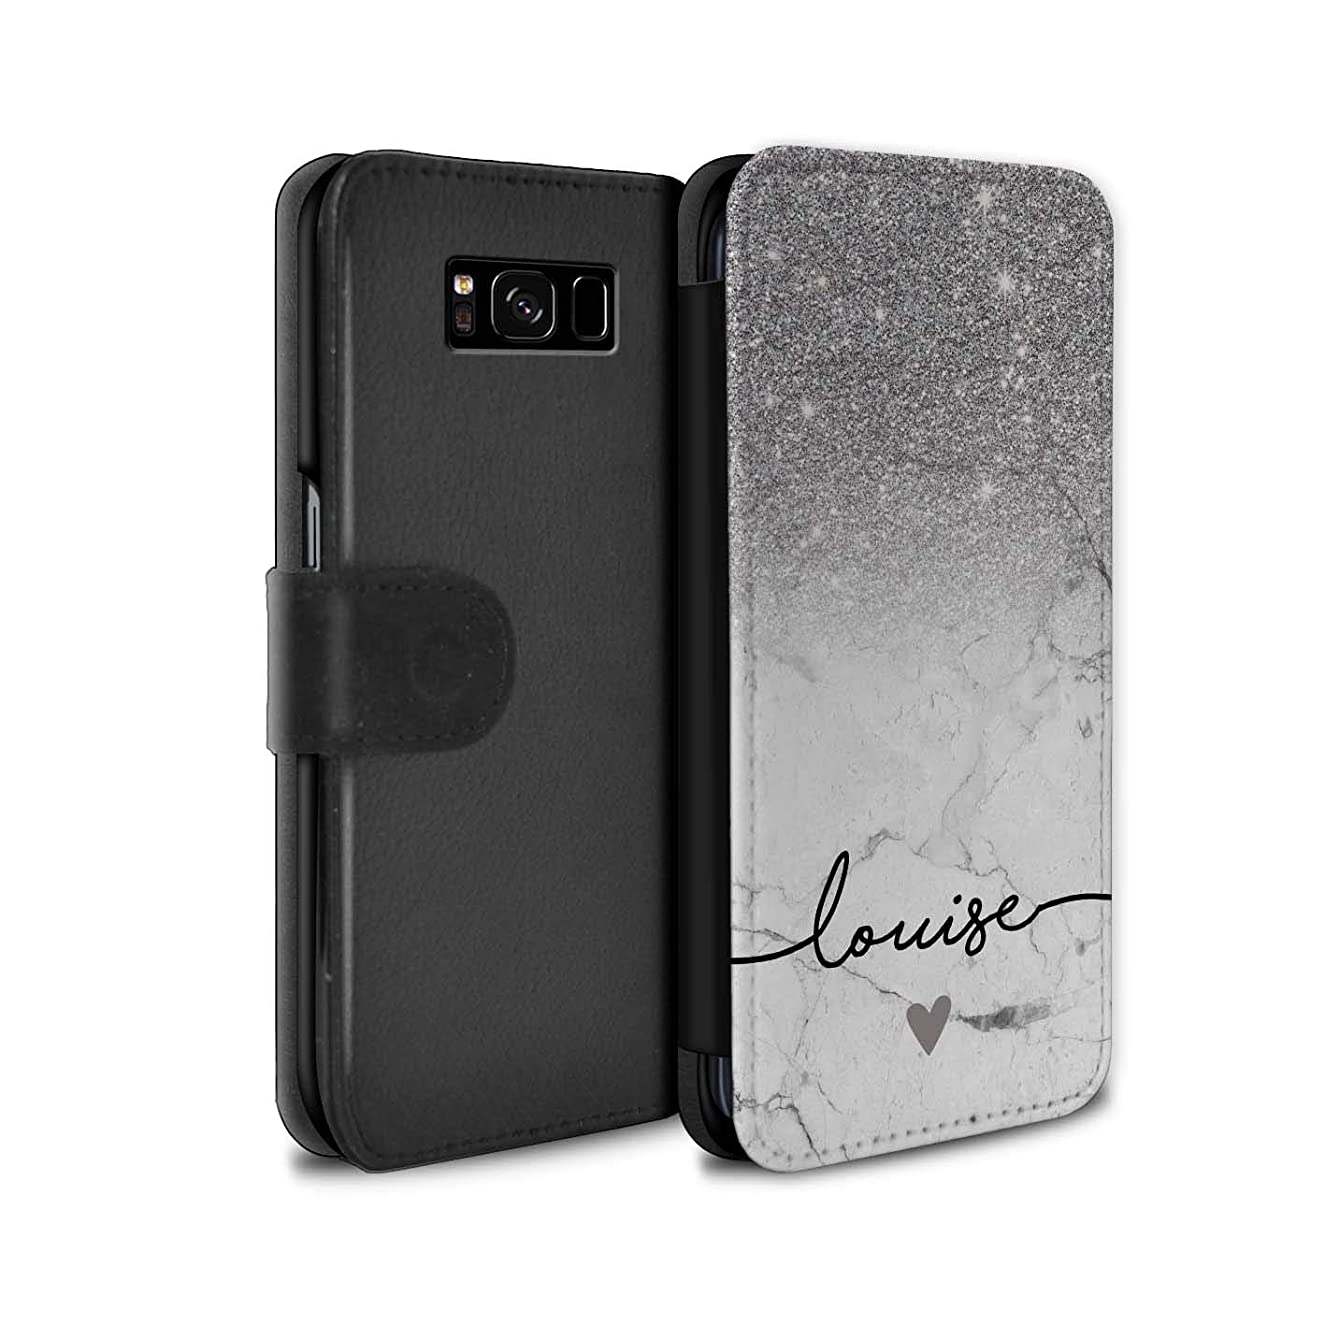 Personalized Custom Handwriting Glitter Ombre PU Leather Case for Samsung Galaxy S8 Plus/G955 / Silver Sparkle White Marble Design/Initial/Name/Text DIY Wallet/Cover